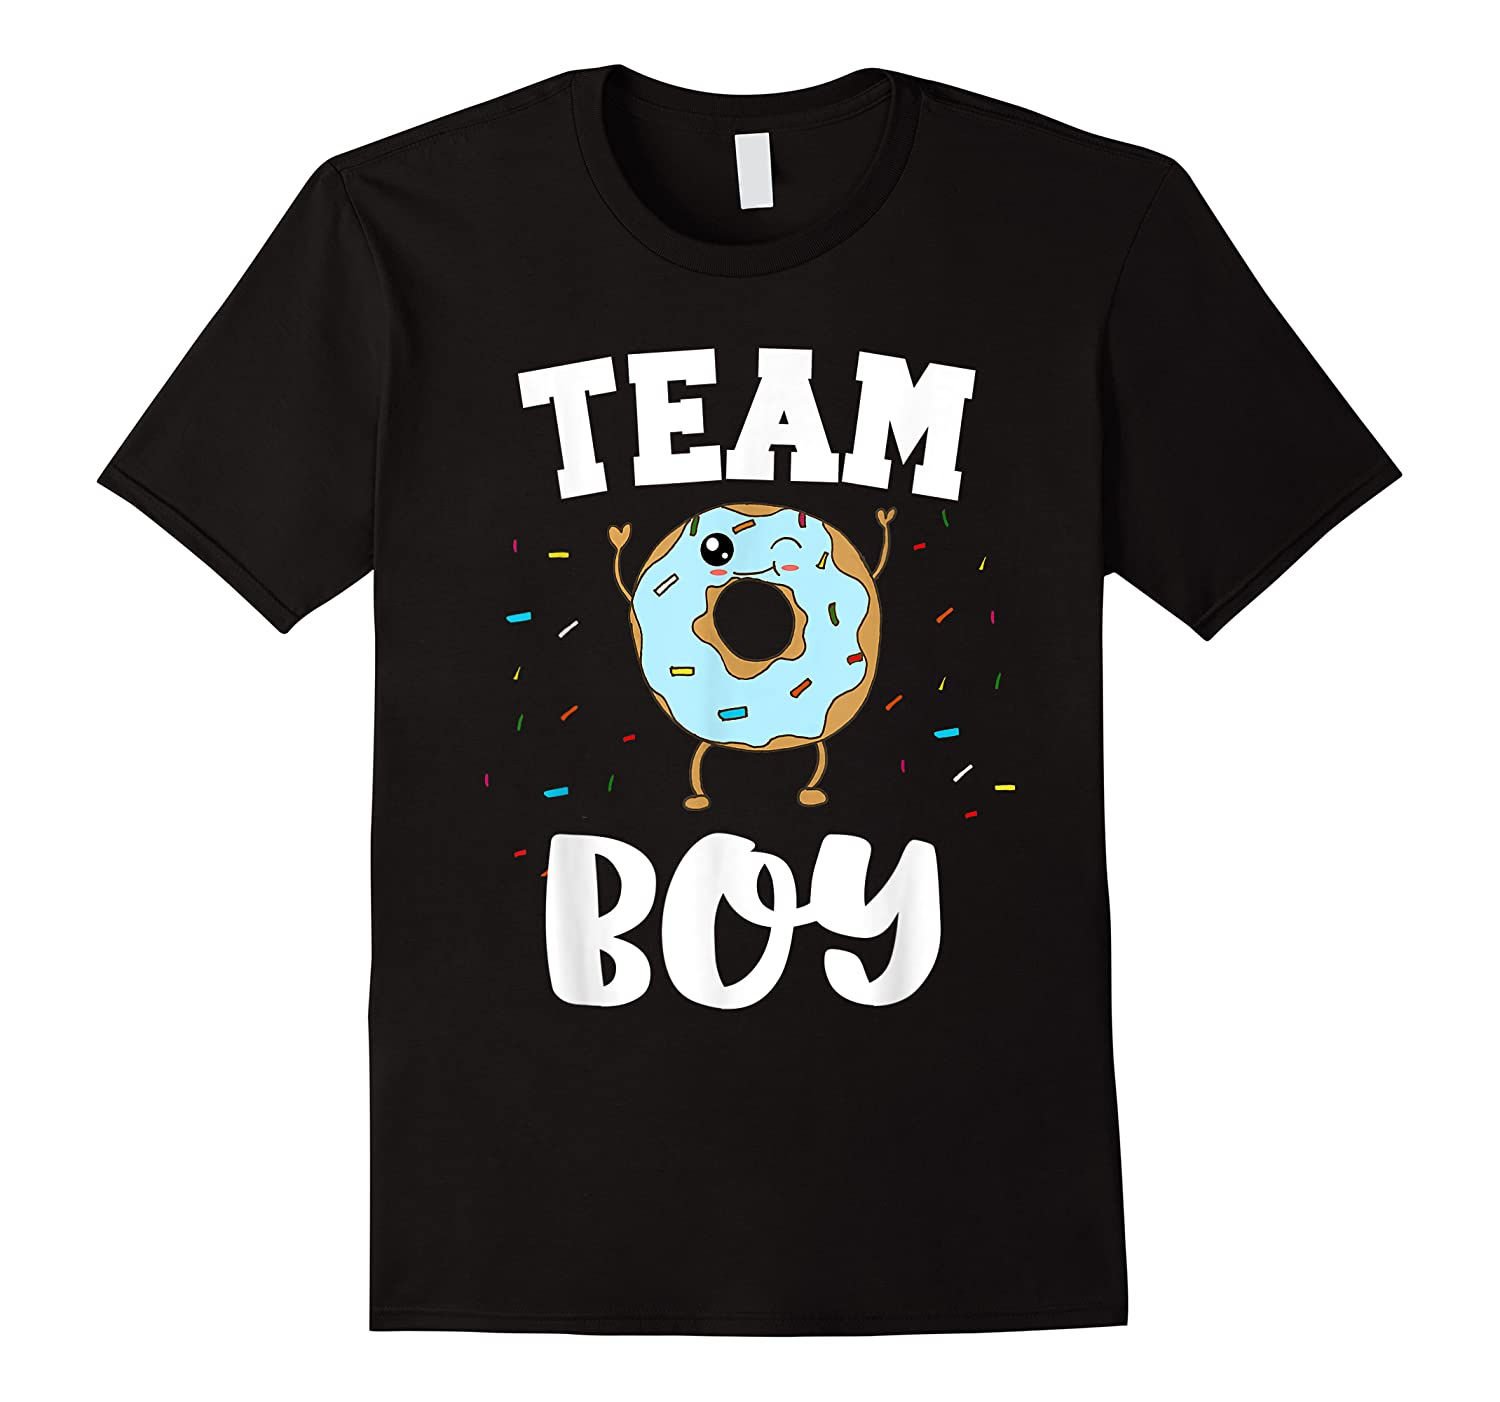 Team Boy Donut Gender Reveal Party Funny And Cute Blue Shirts